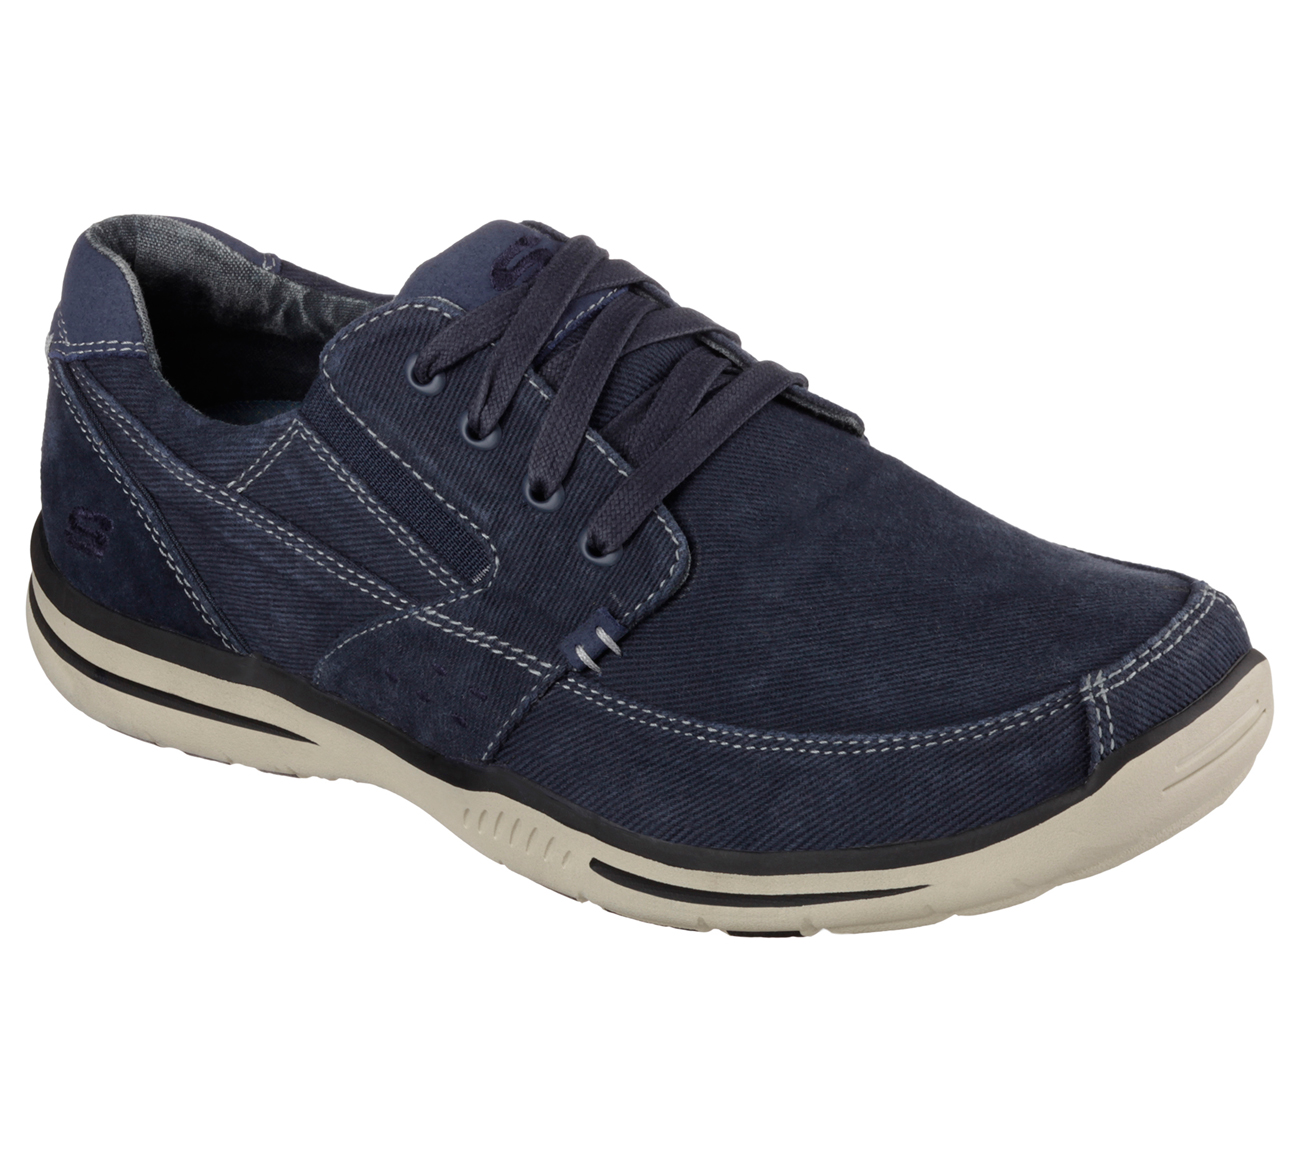 Walmart Canada carries a wide selection of shoes for men, women and kids. You'll find brand favourites and a variety of styles at great prices.